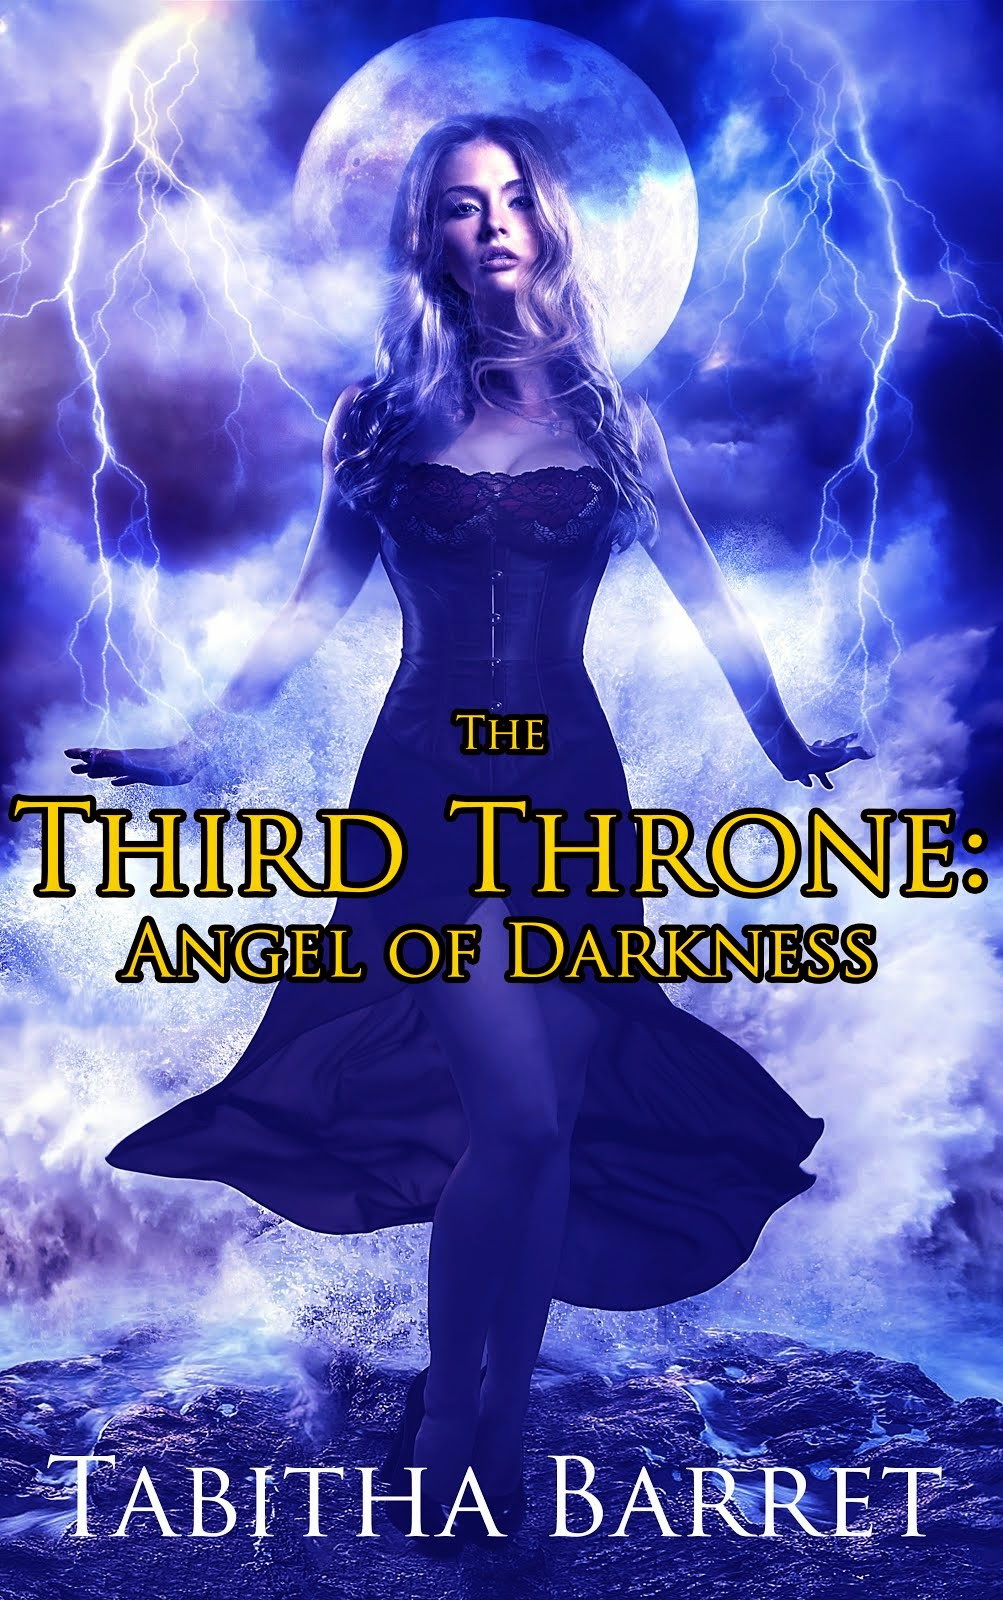 The Third Throne: Angel of Darkness (Book 1), by Tabitha Barret